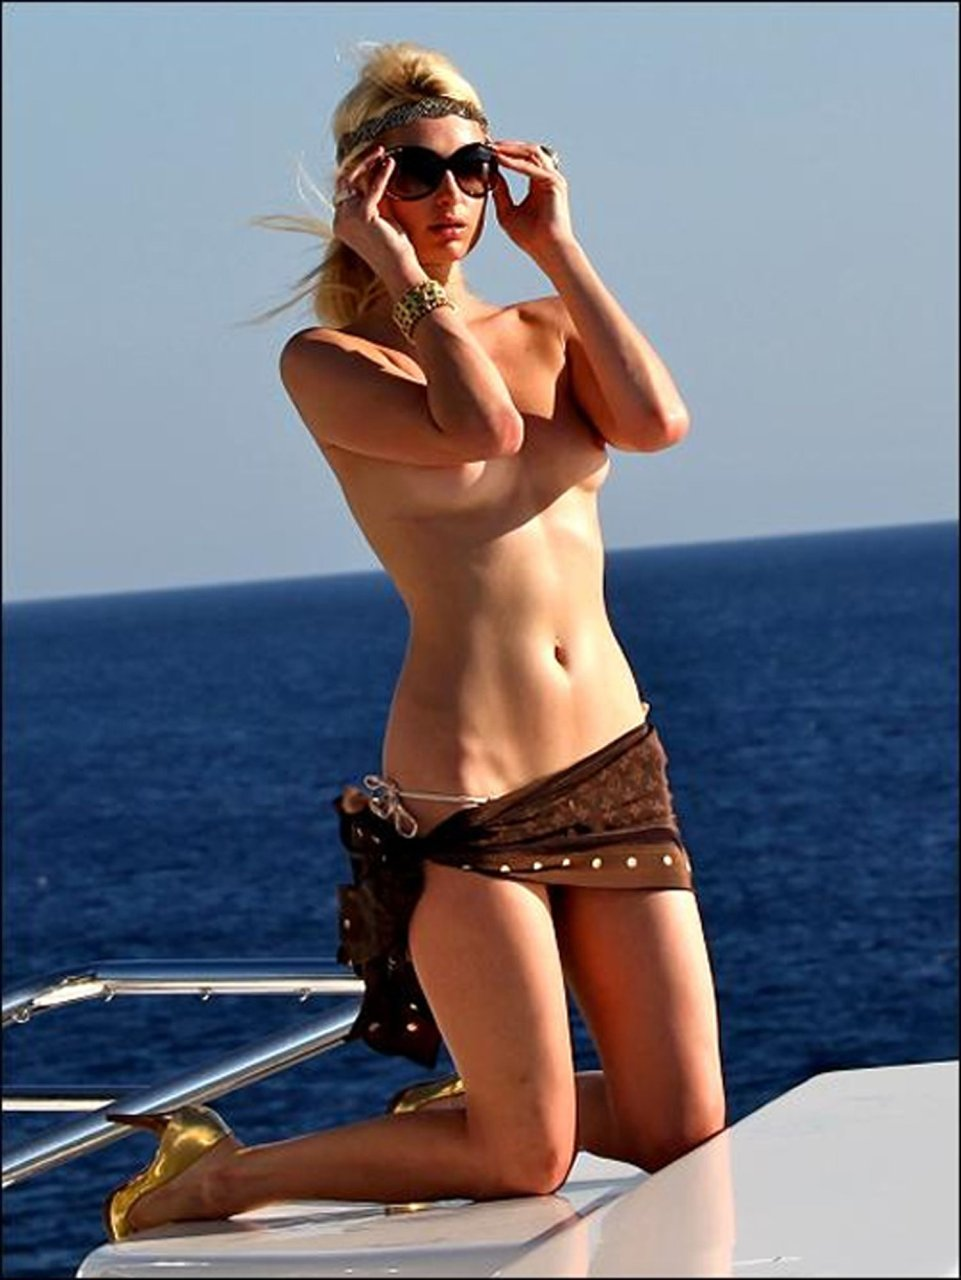 Paris bikini photo hilton